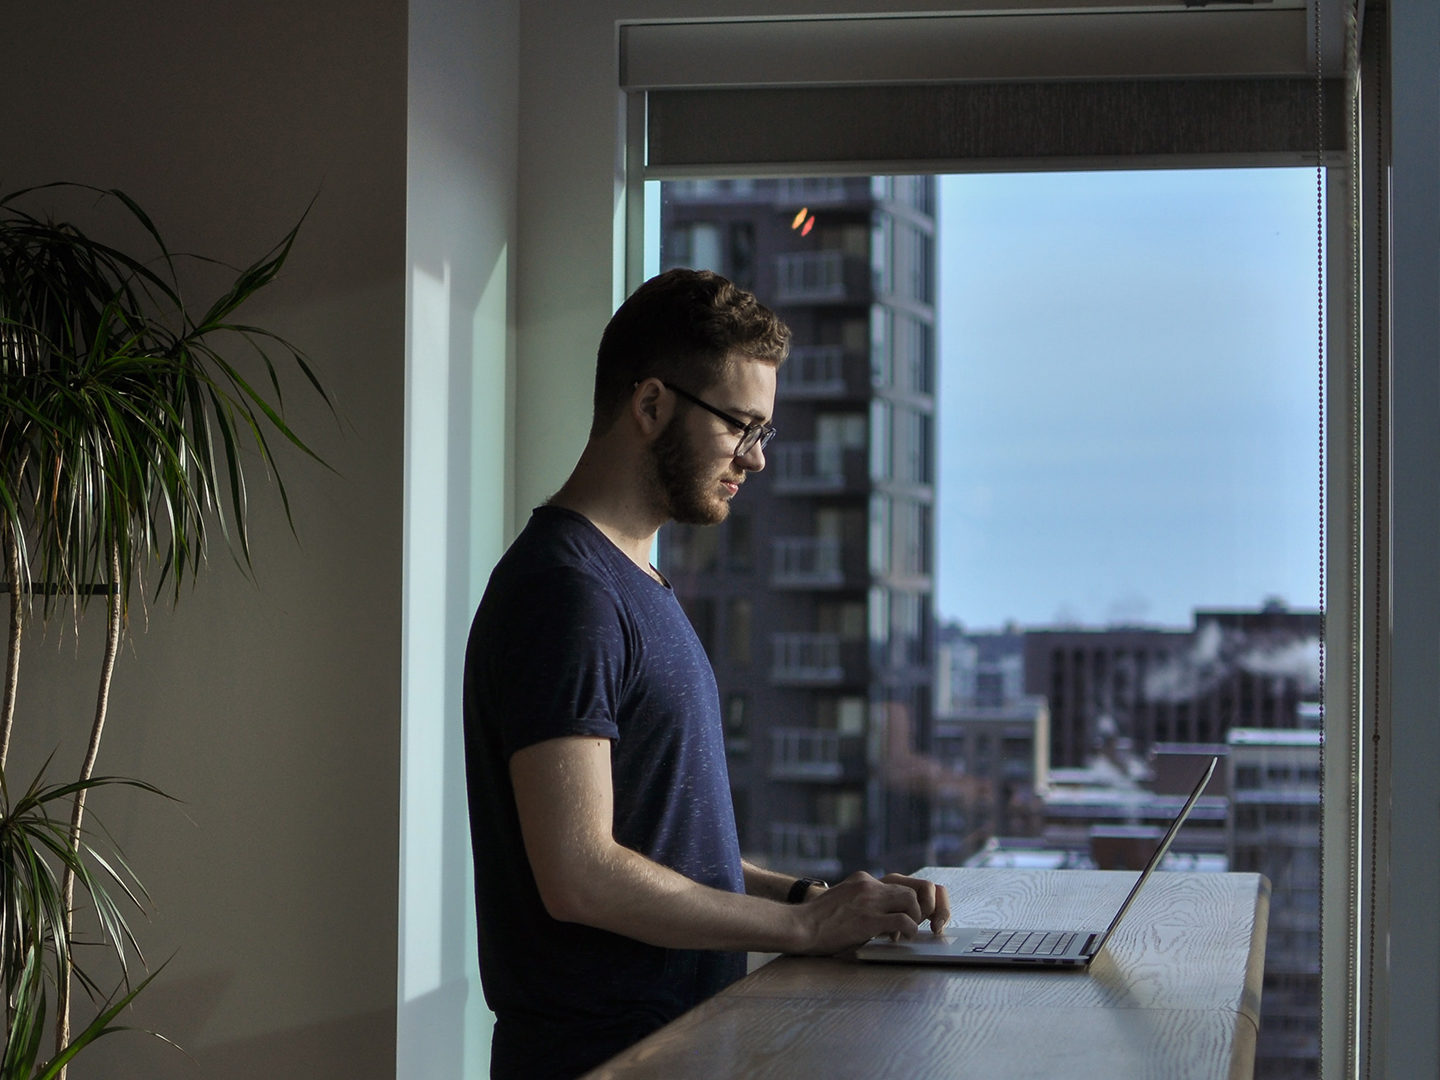 Man standing in city apartment